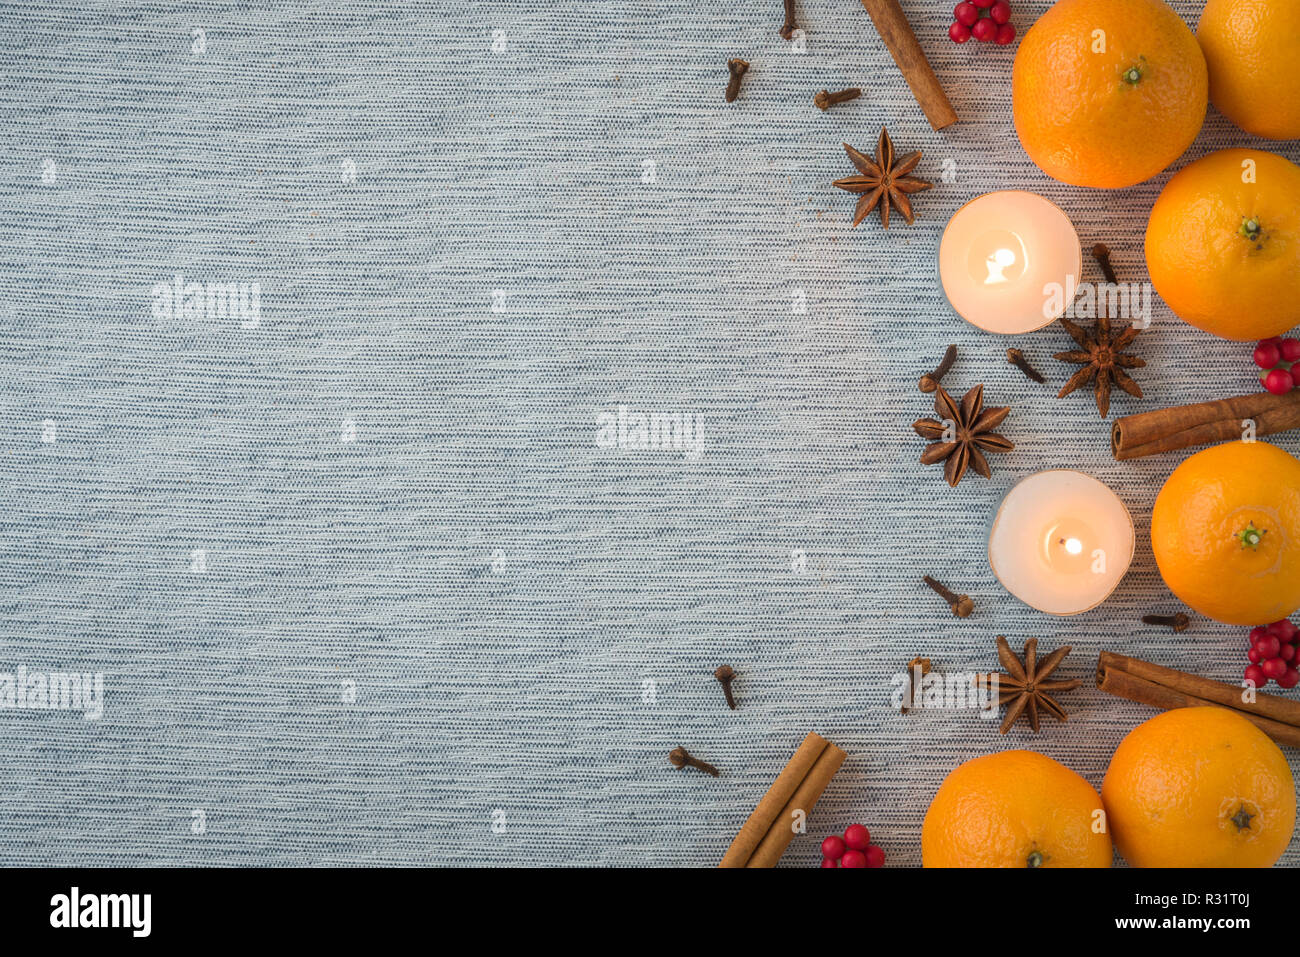 Flat lay seasonal arrangement of oranges, spices, and candles - Stock Image